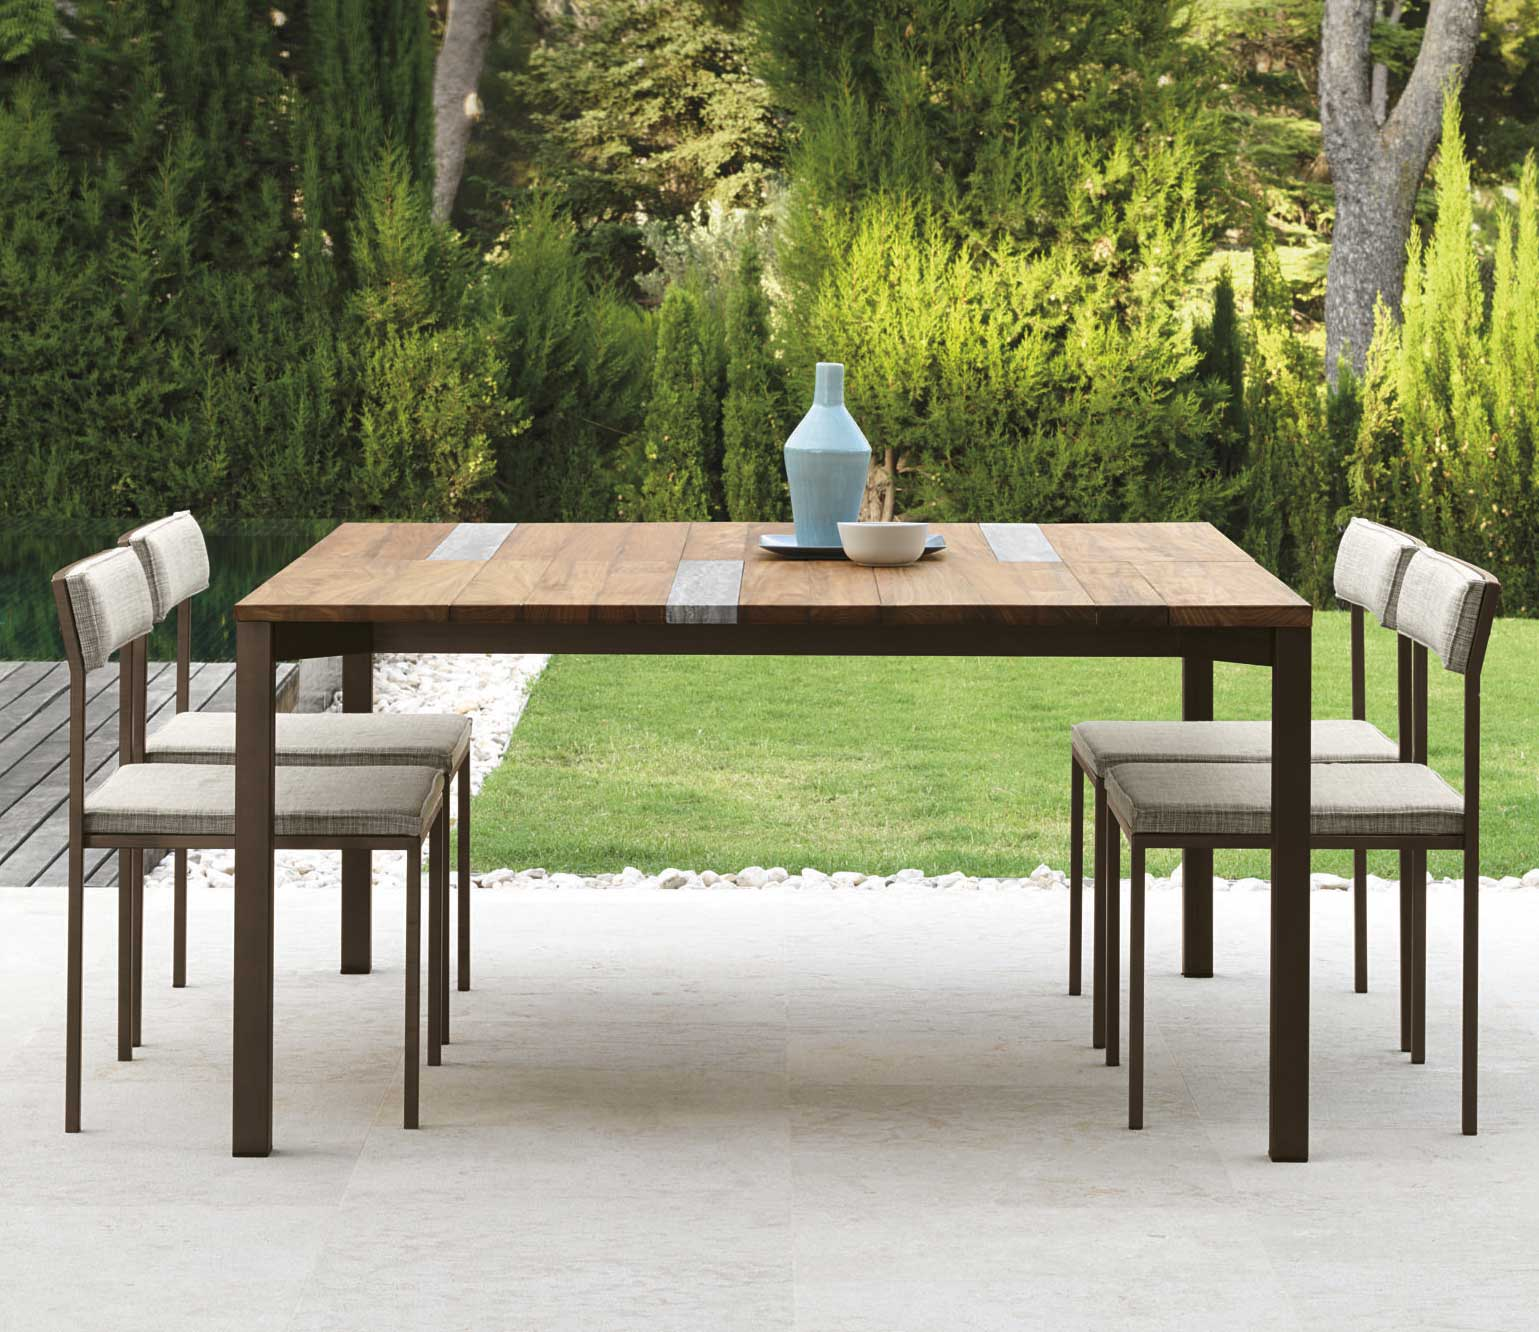 Garden Table With Stainless Steel Frame. Top In Iroko Wood And Travertine. Patio  Furniture